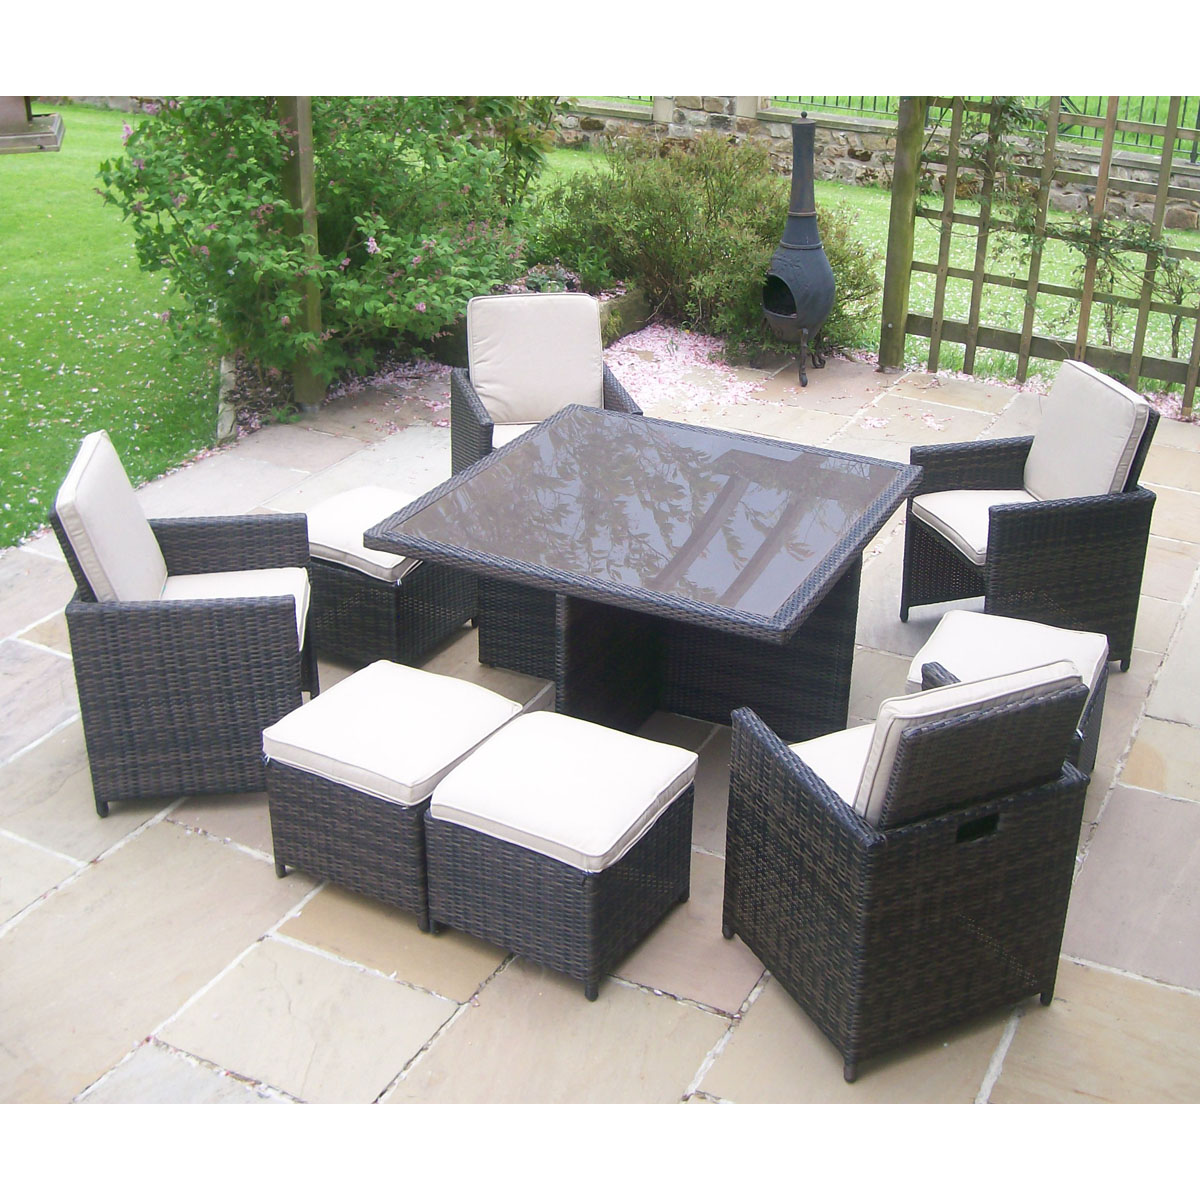 CHOOSING WOOD FOR YOUR PATIO FURNITURE Rattan And Wicker Furniture Minh Thy